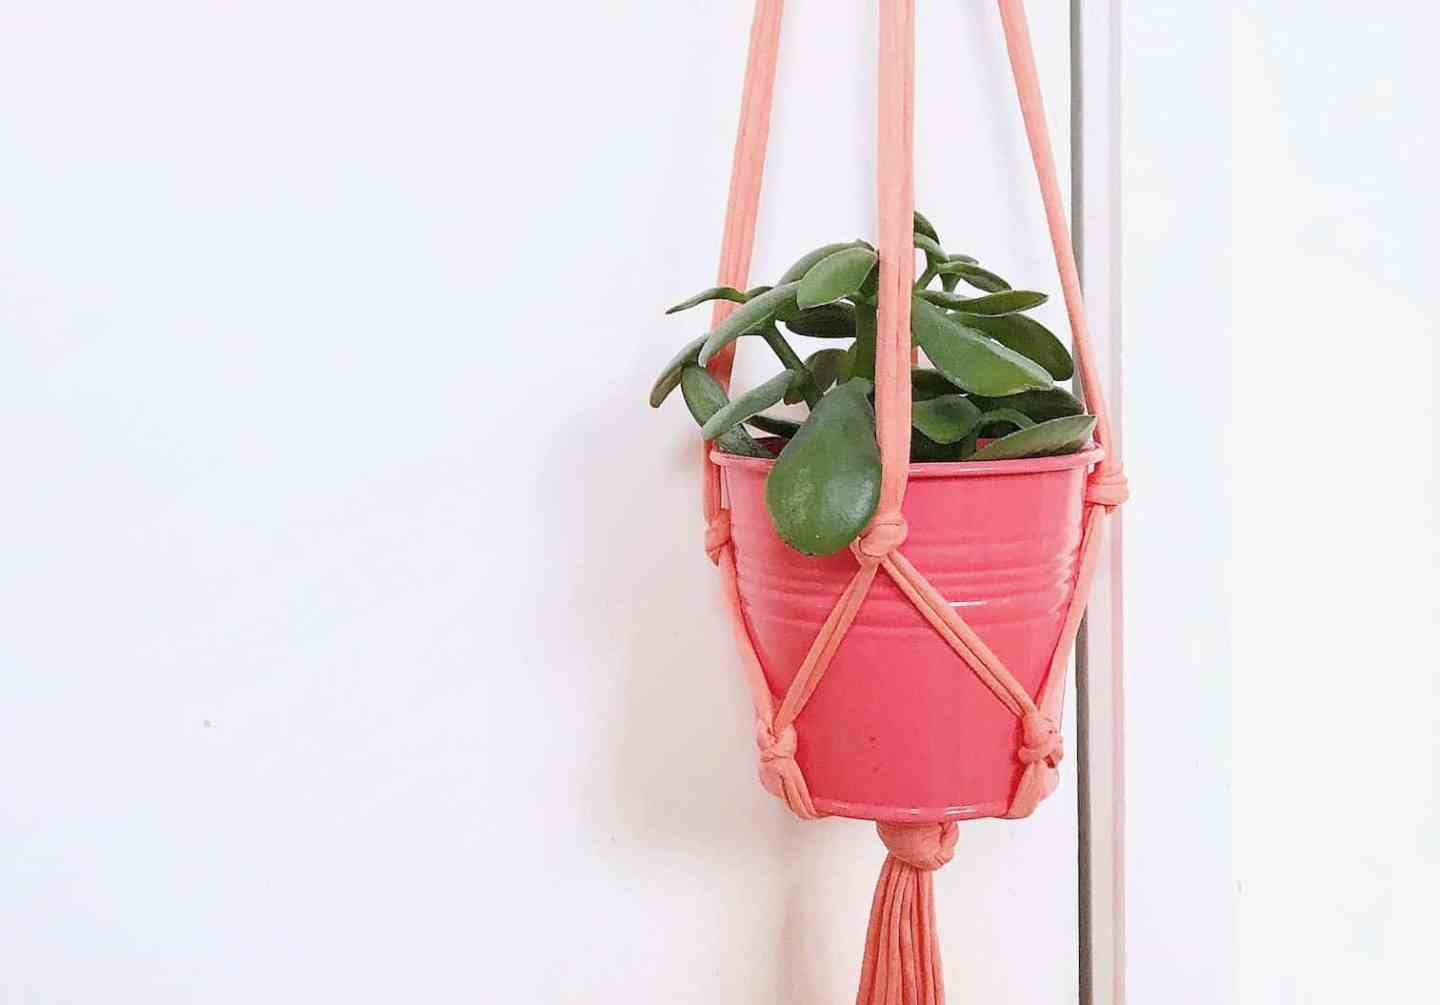 Ten Minutes To Make A Macrame Plant Hanger